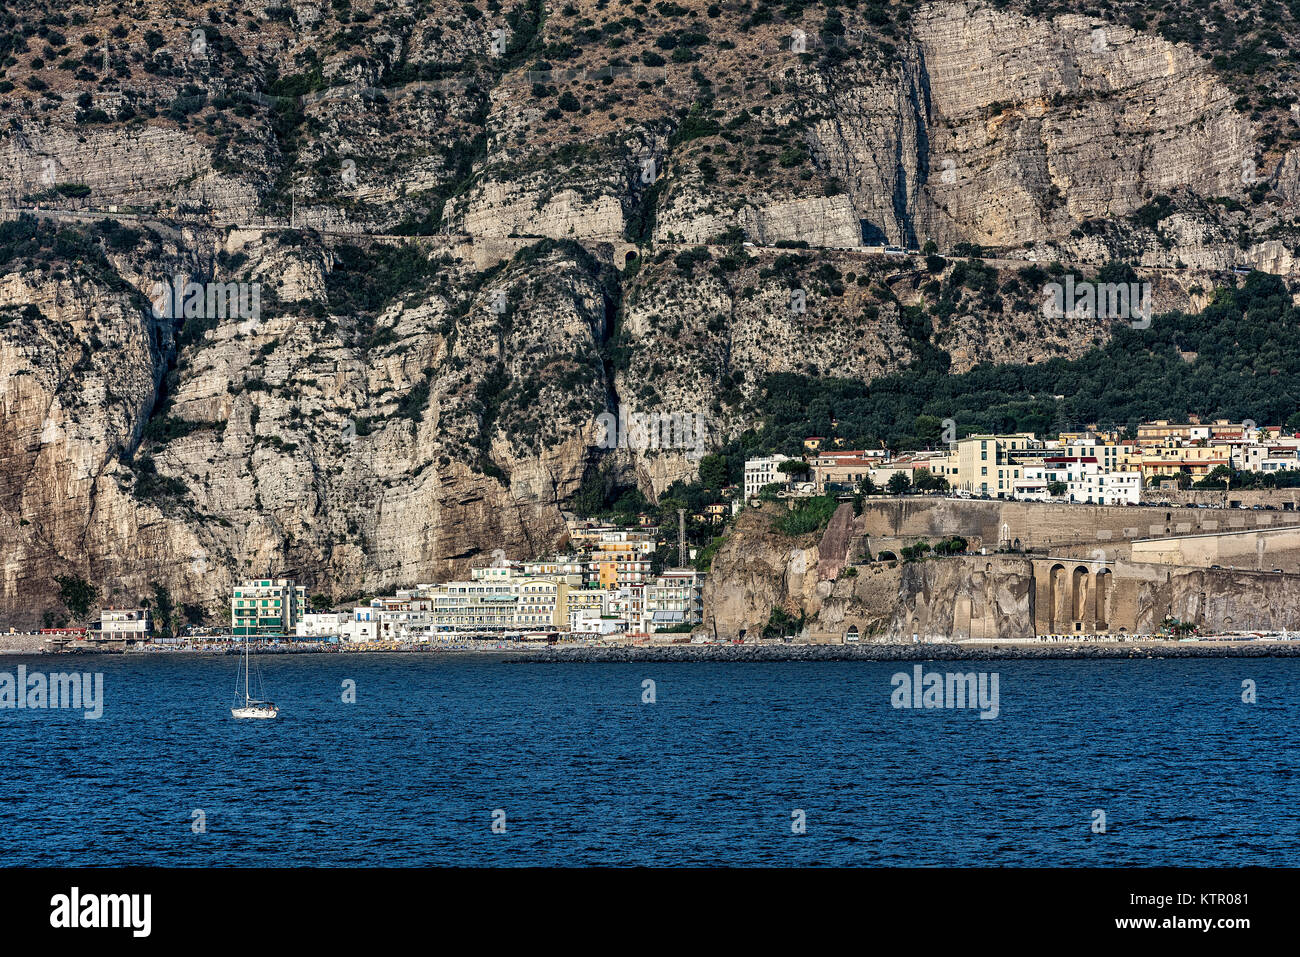 Sea cliffs and waterfront architecture, Meta di Sorrento, Italy. - Stock Image